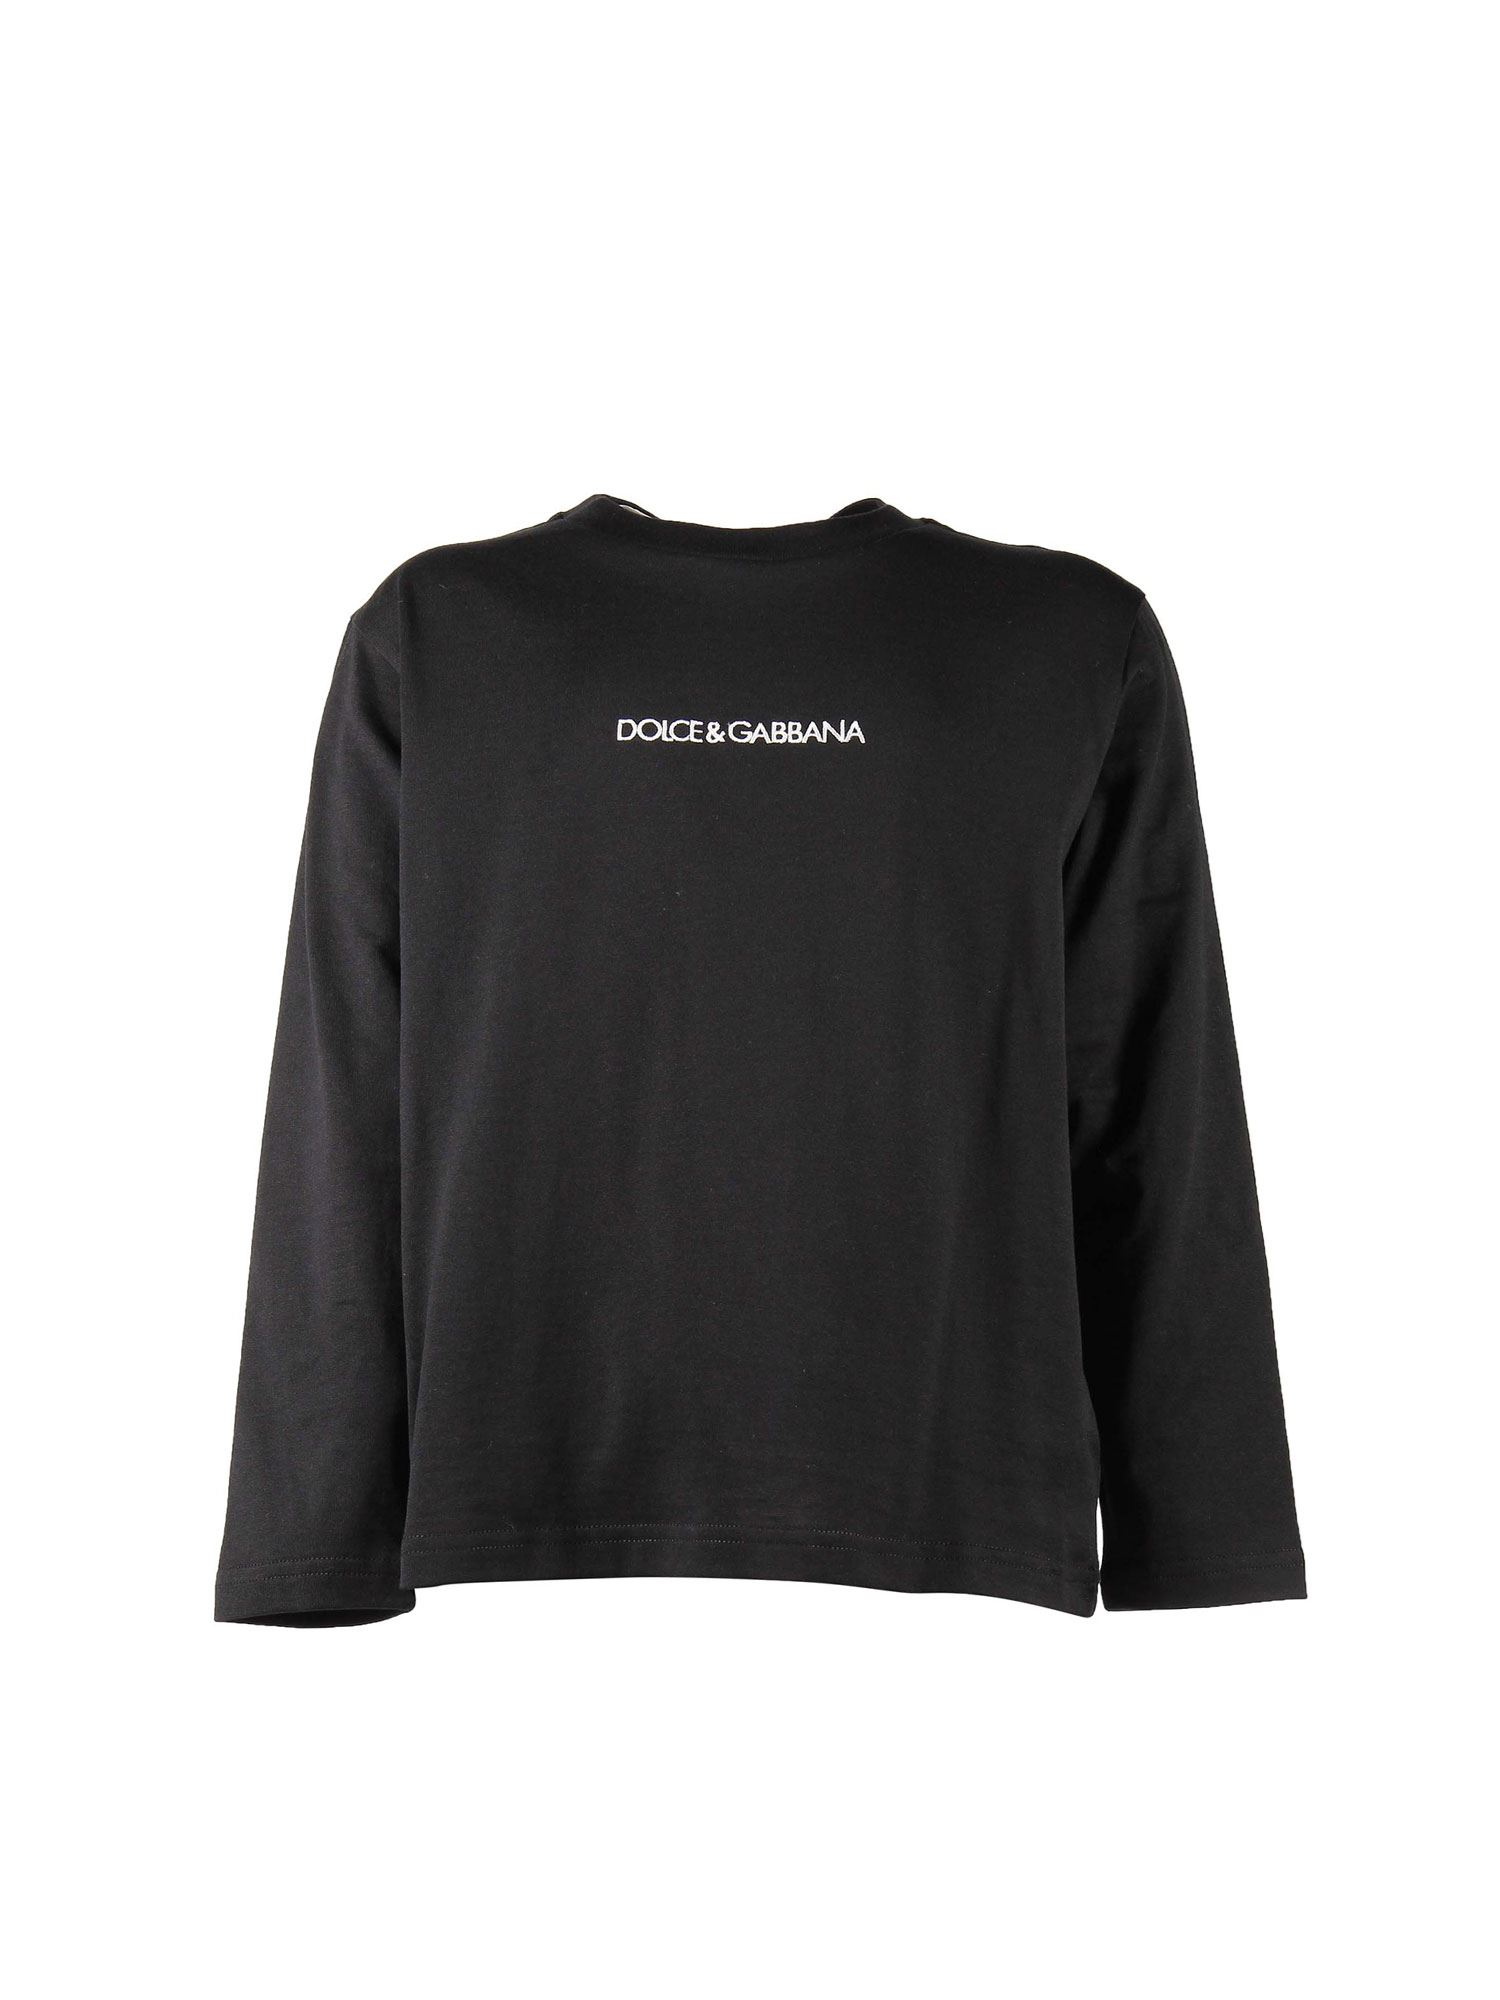 Dolce & Gabbana Jr LONG-SLEEVED BLACK T-SHIRT